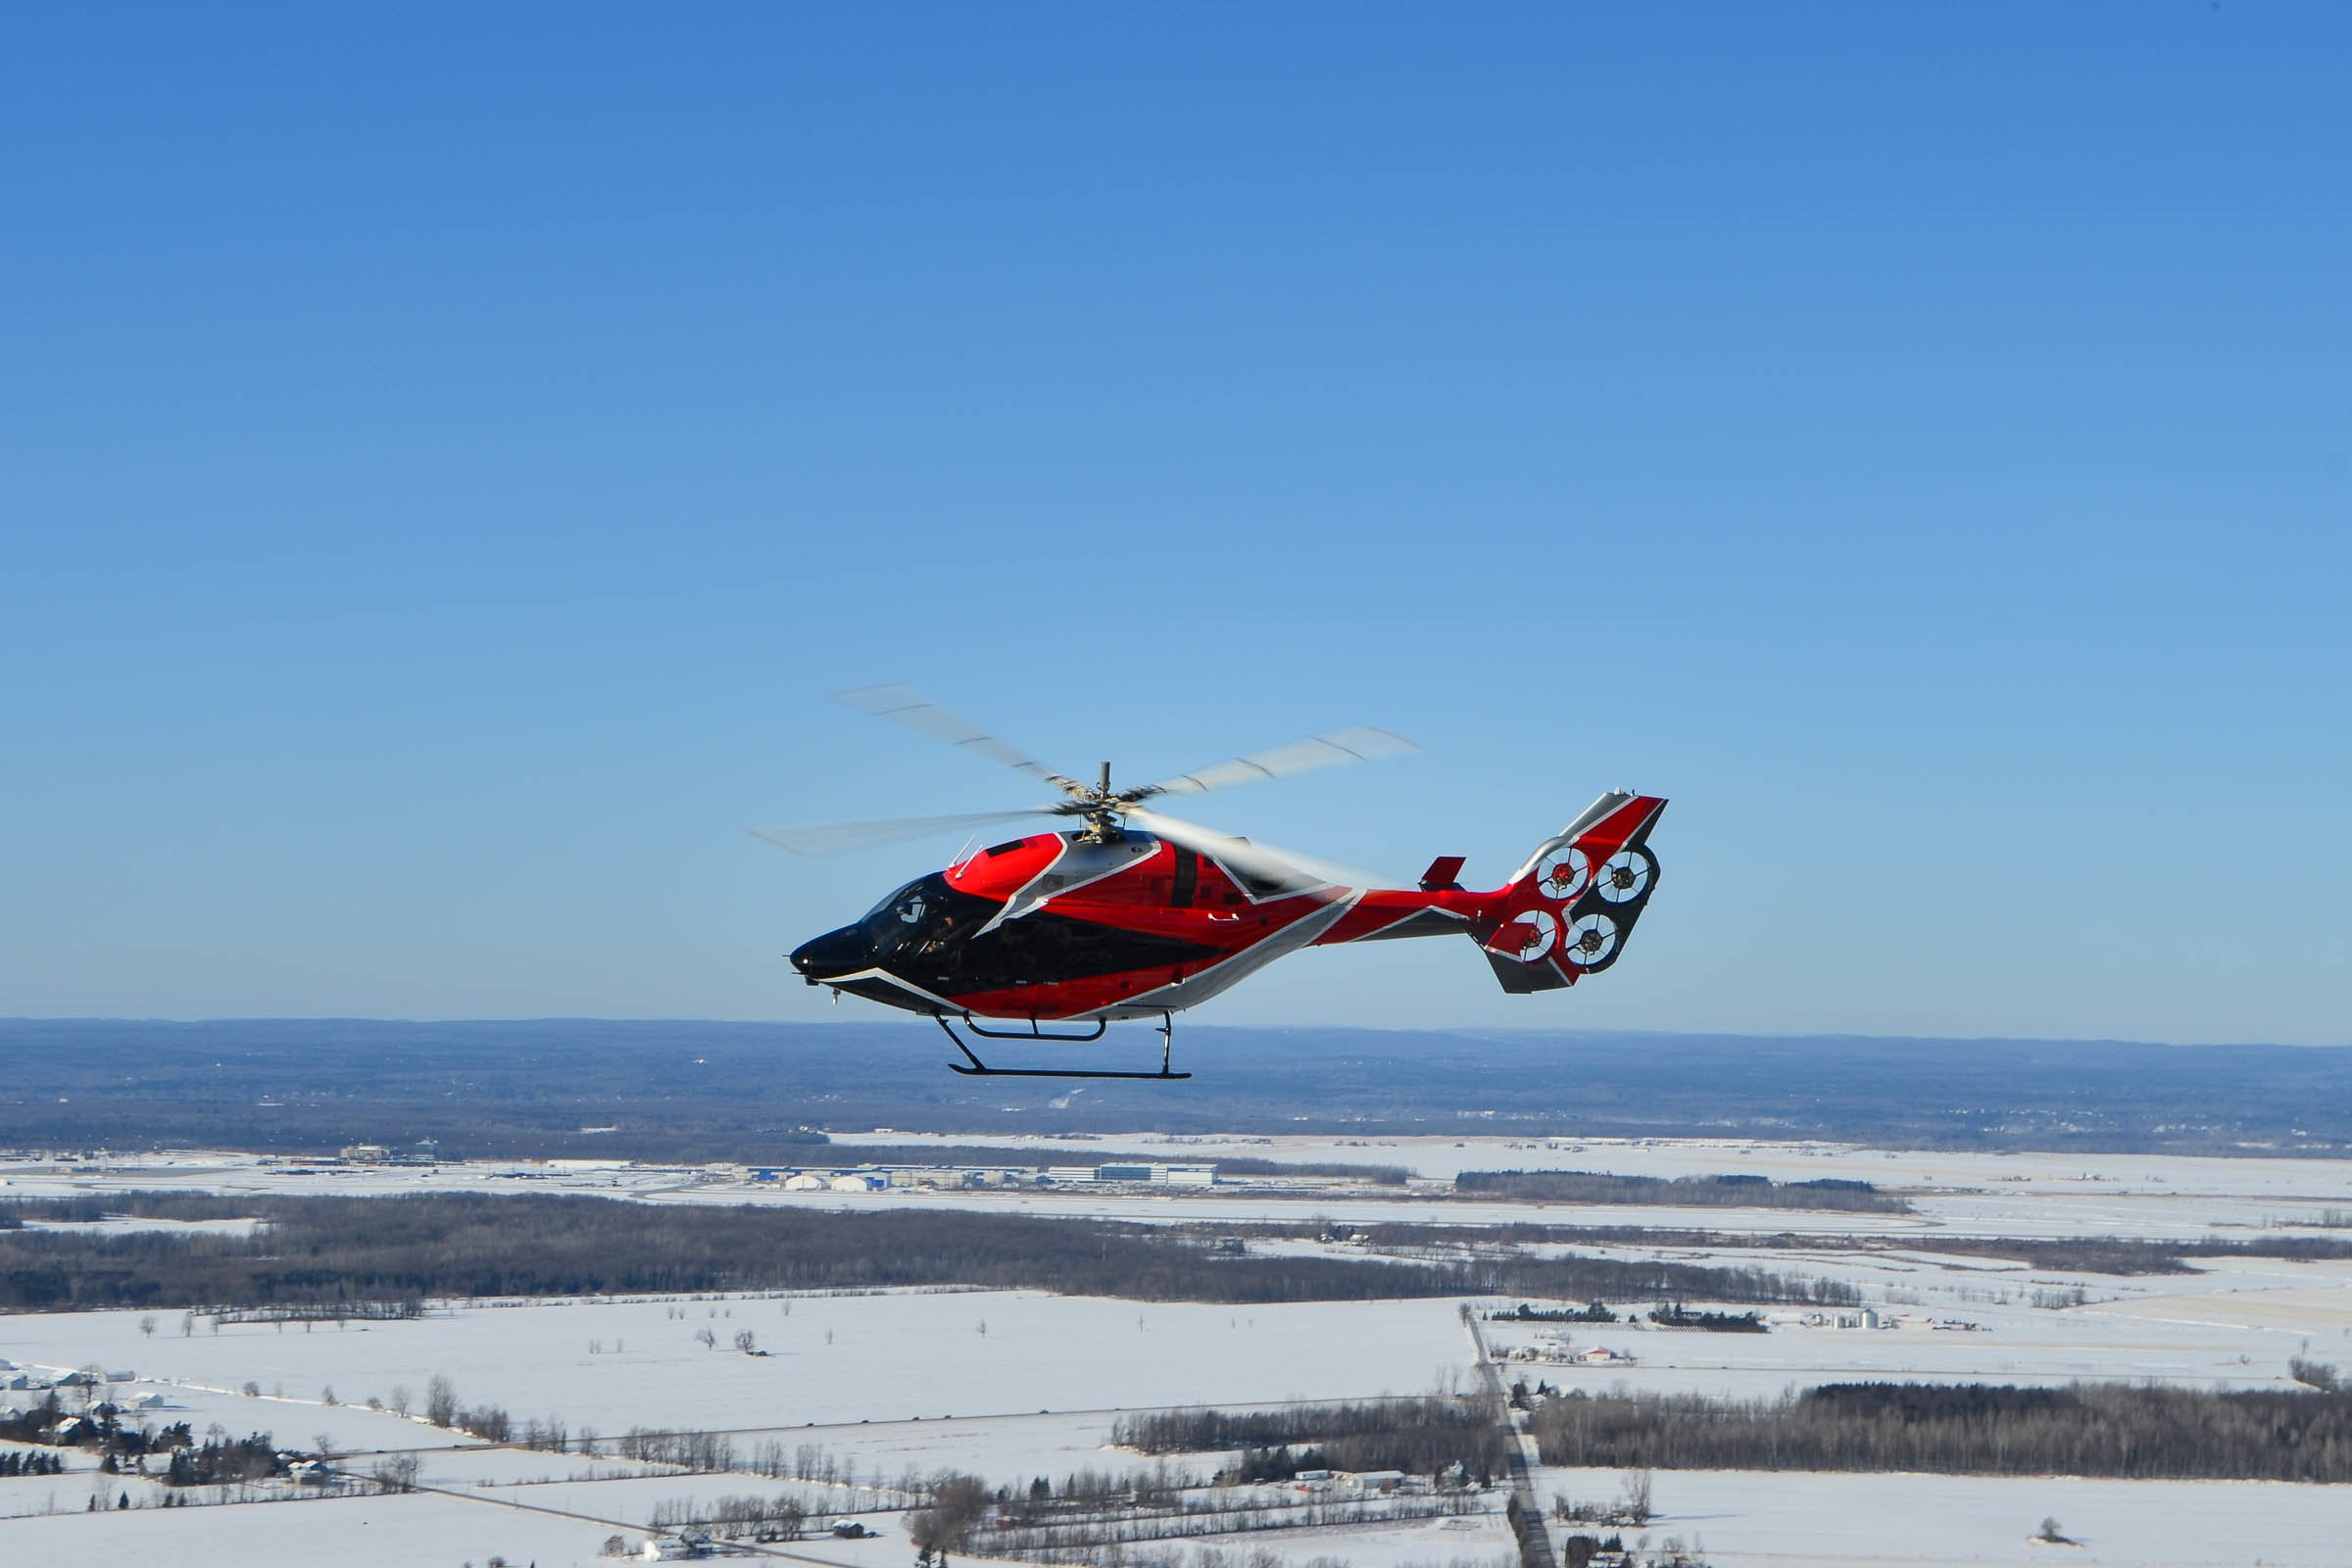 A red helicopter flying over a snowy landscape